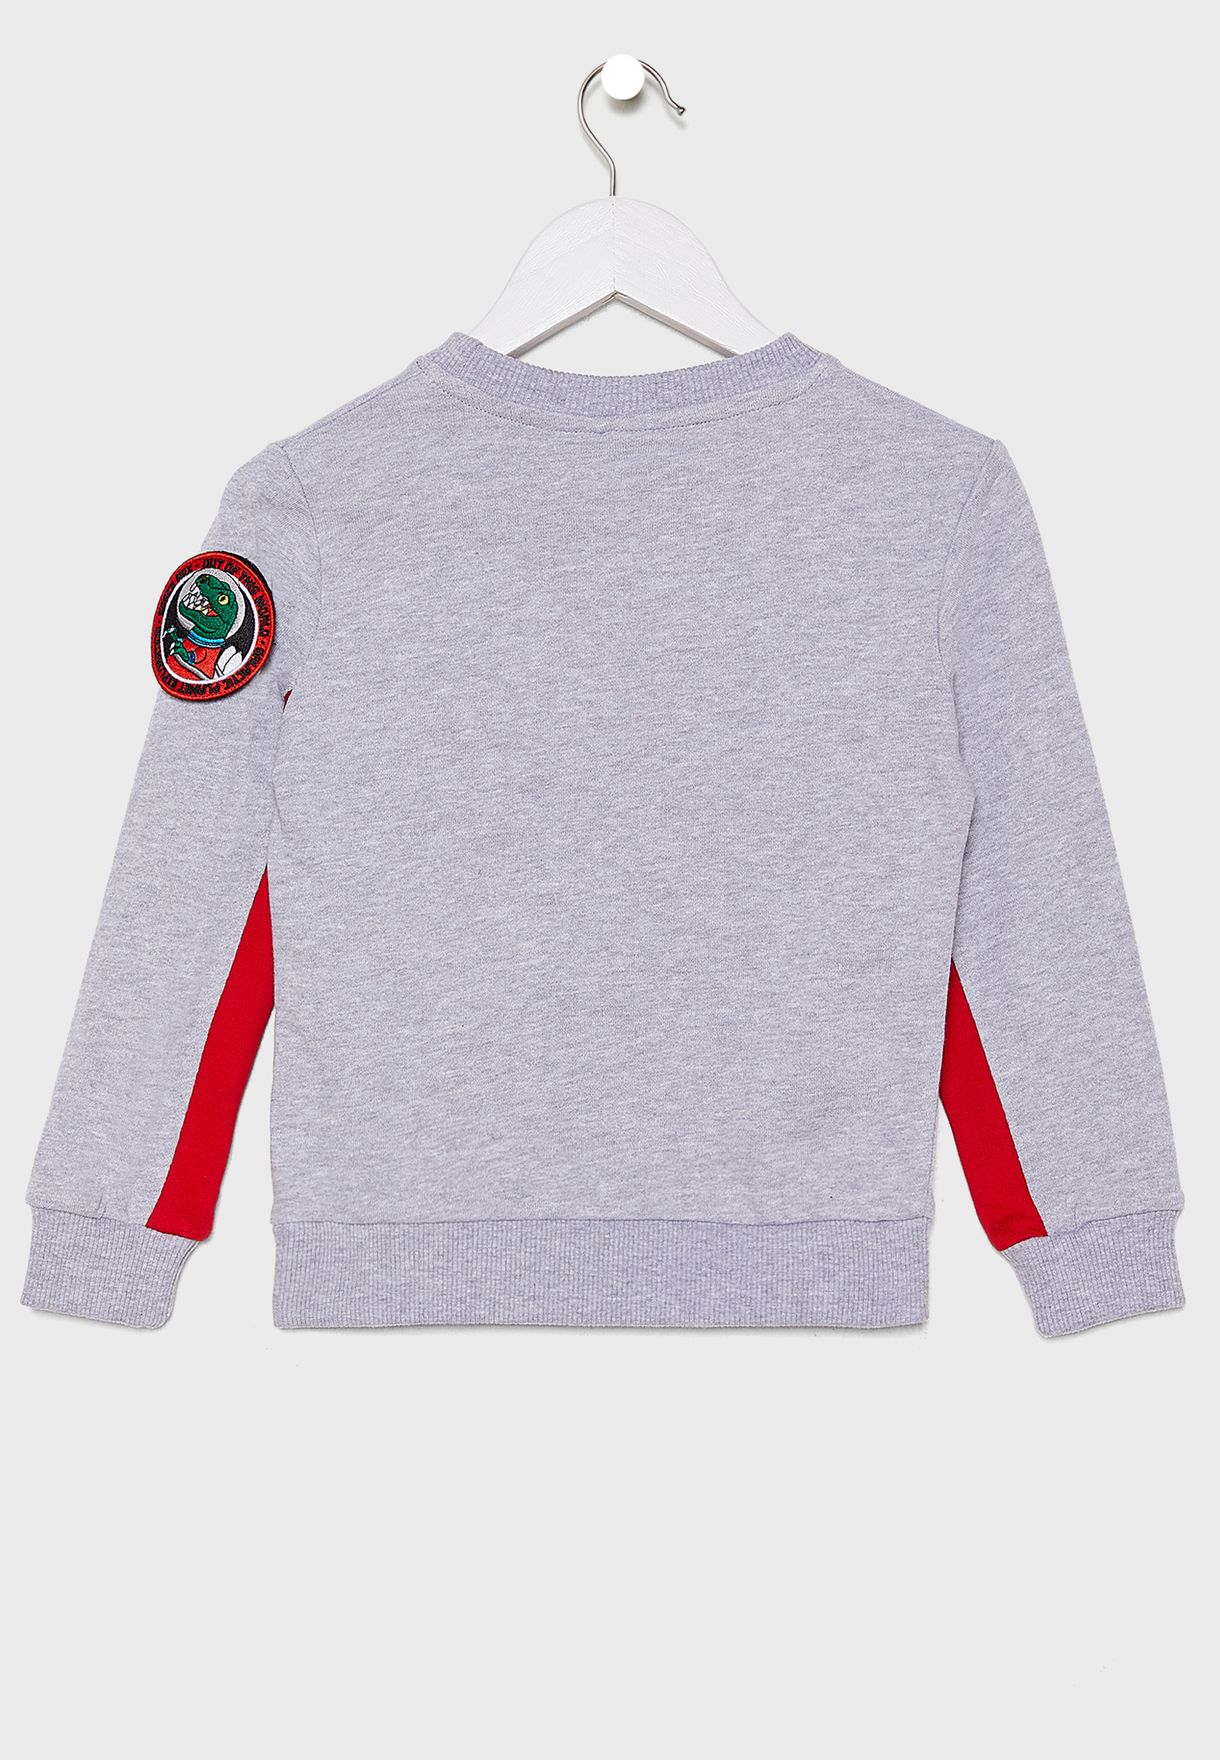 Kids Out Of This World Sweatshirt